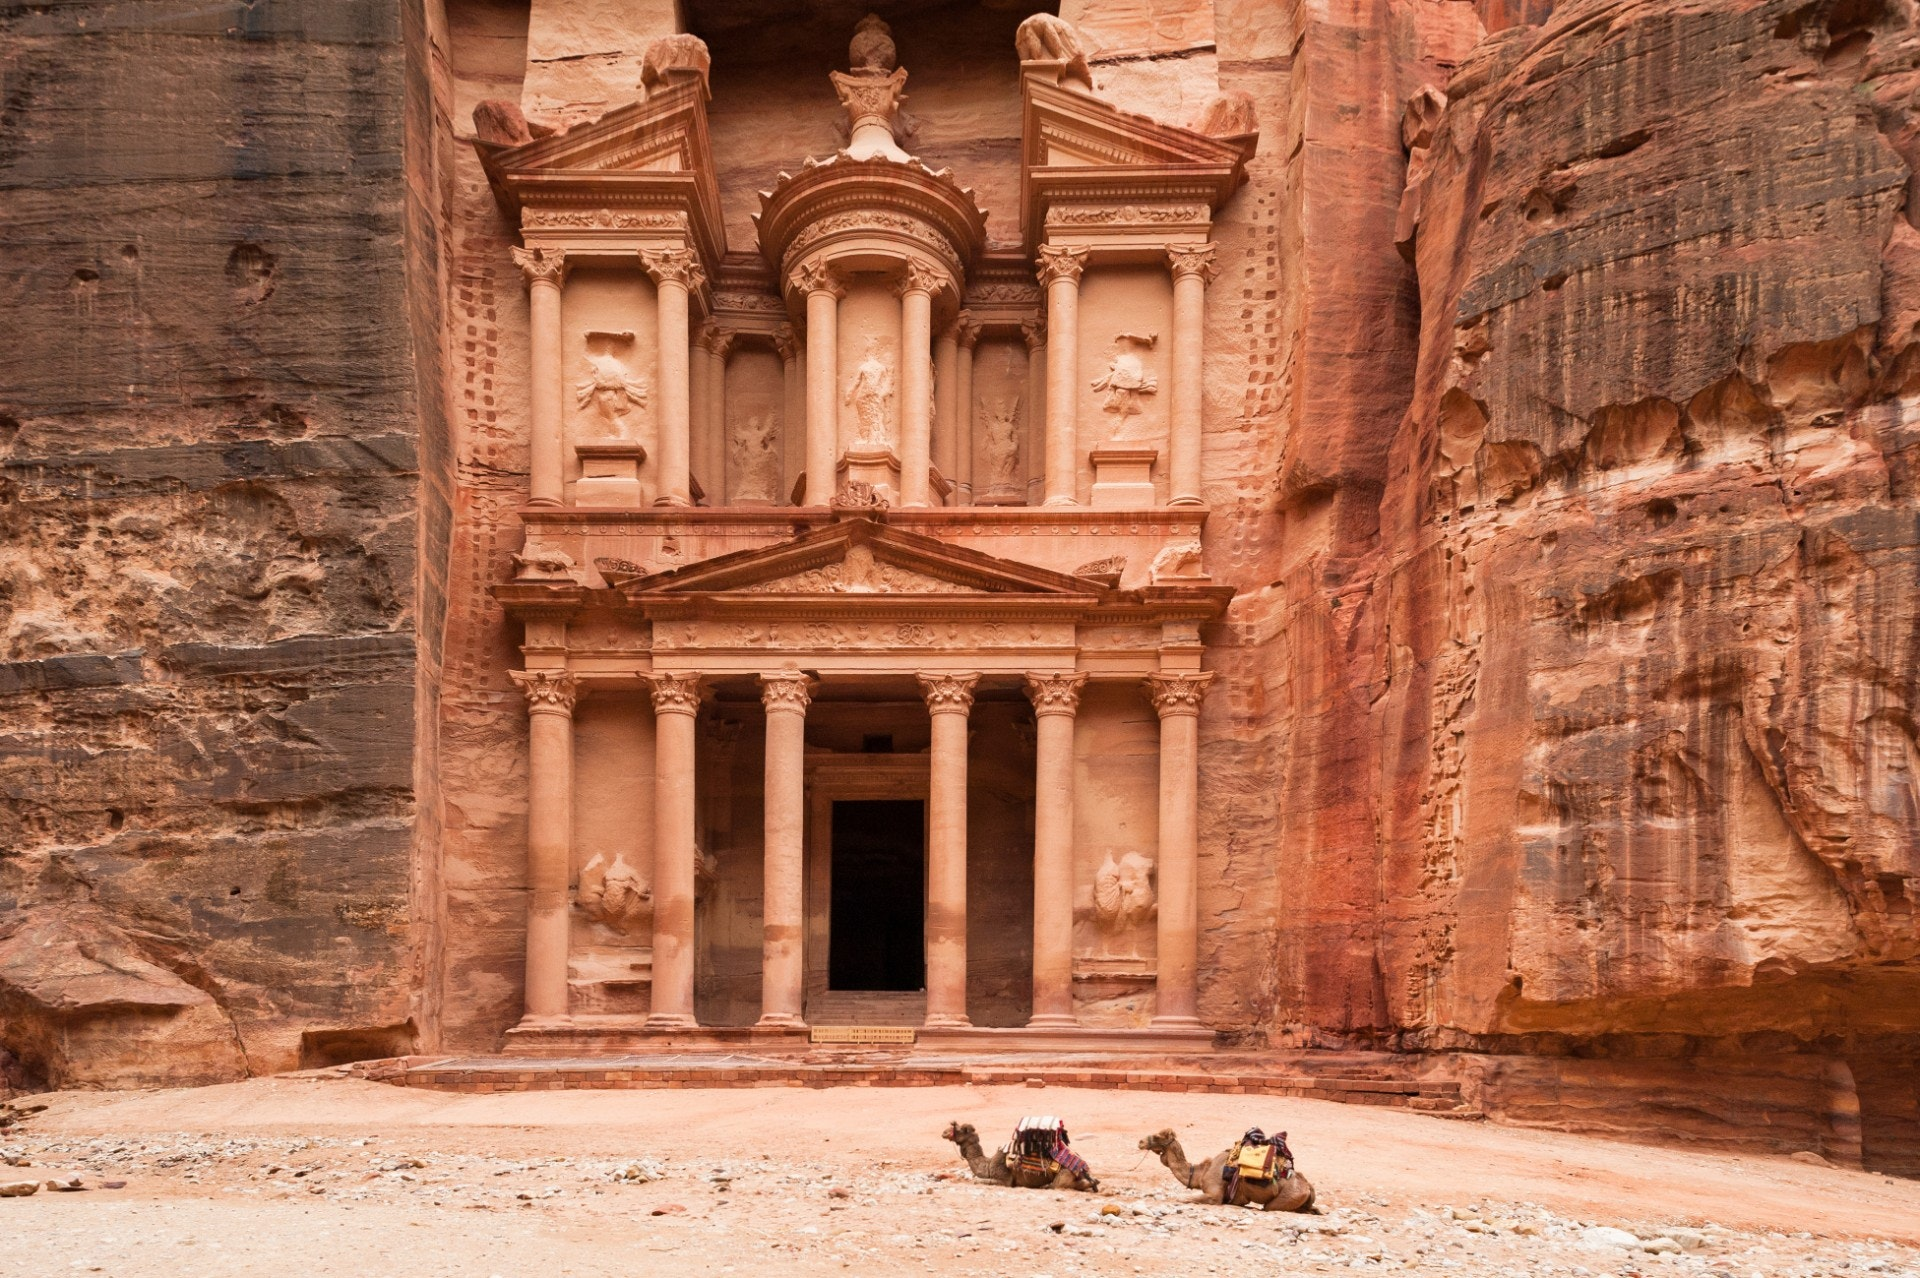 The architectural wonder of Petra is one of Jordan's main attractions.